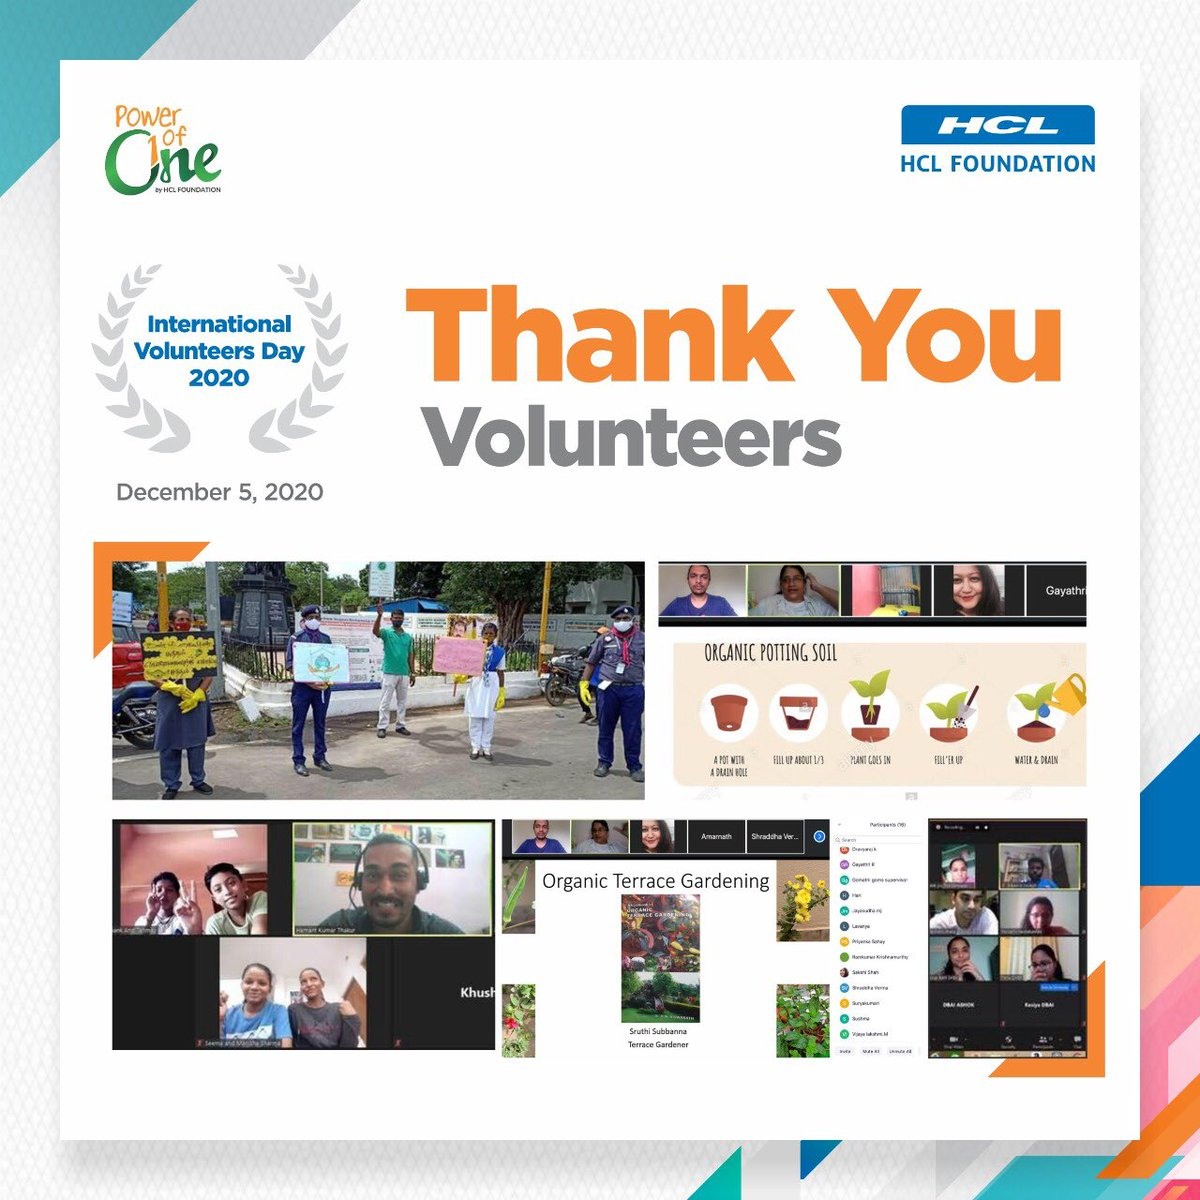 The pandemic could not deter the commitment and spirit of our enthusiastic volunteers!  This International Volunteer Day, we extend a heartfelt gratitude to our volunteers for their continuous efforts and contributions during these difficult times.  #InternationalVolunteerDay